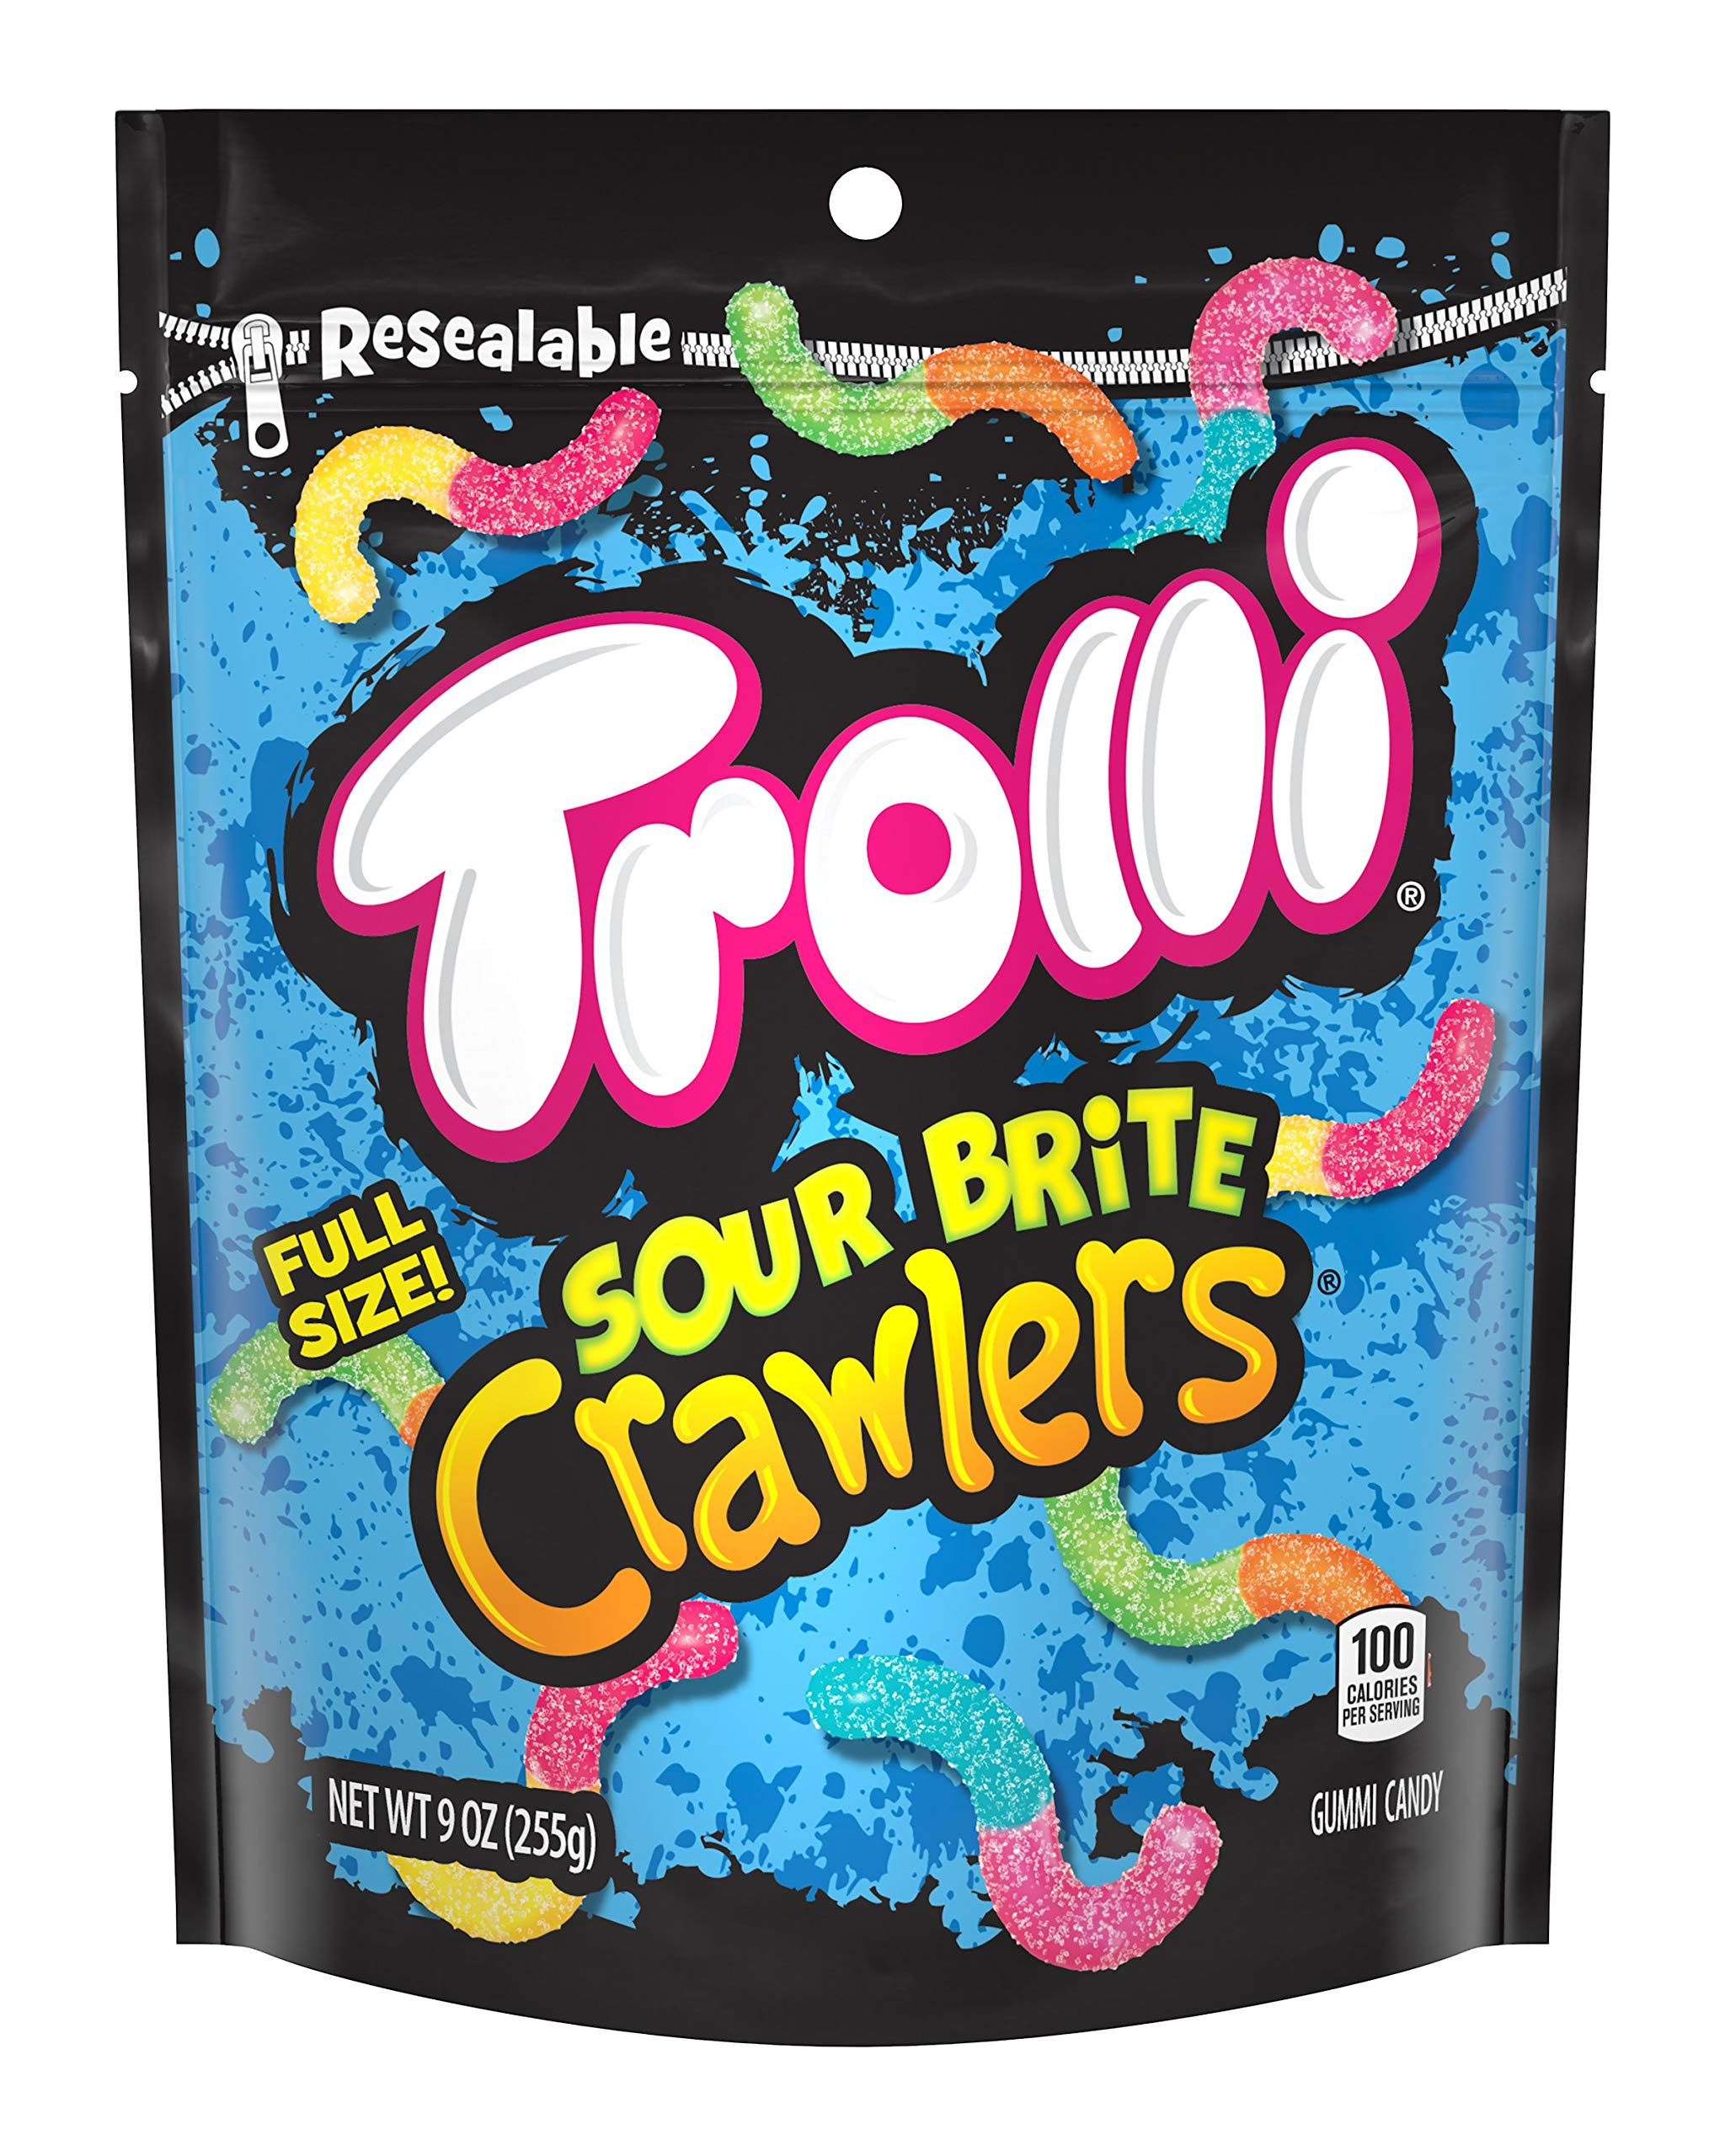 Trolli Sour Brite Crawlers Minis Gummy Candy, 9 Ounce Bag, Pack of 6